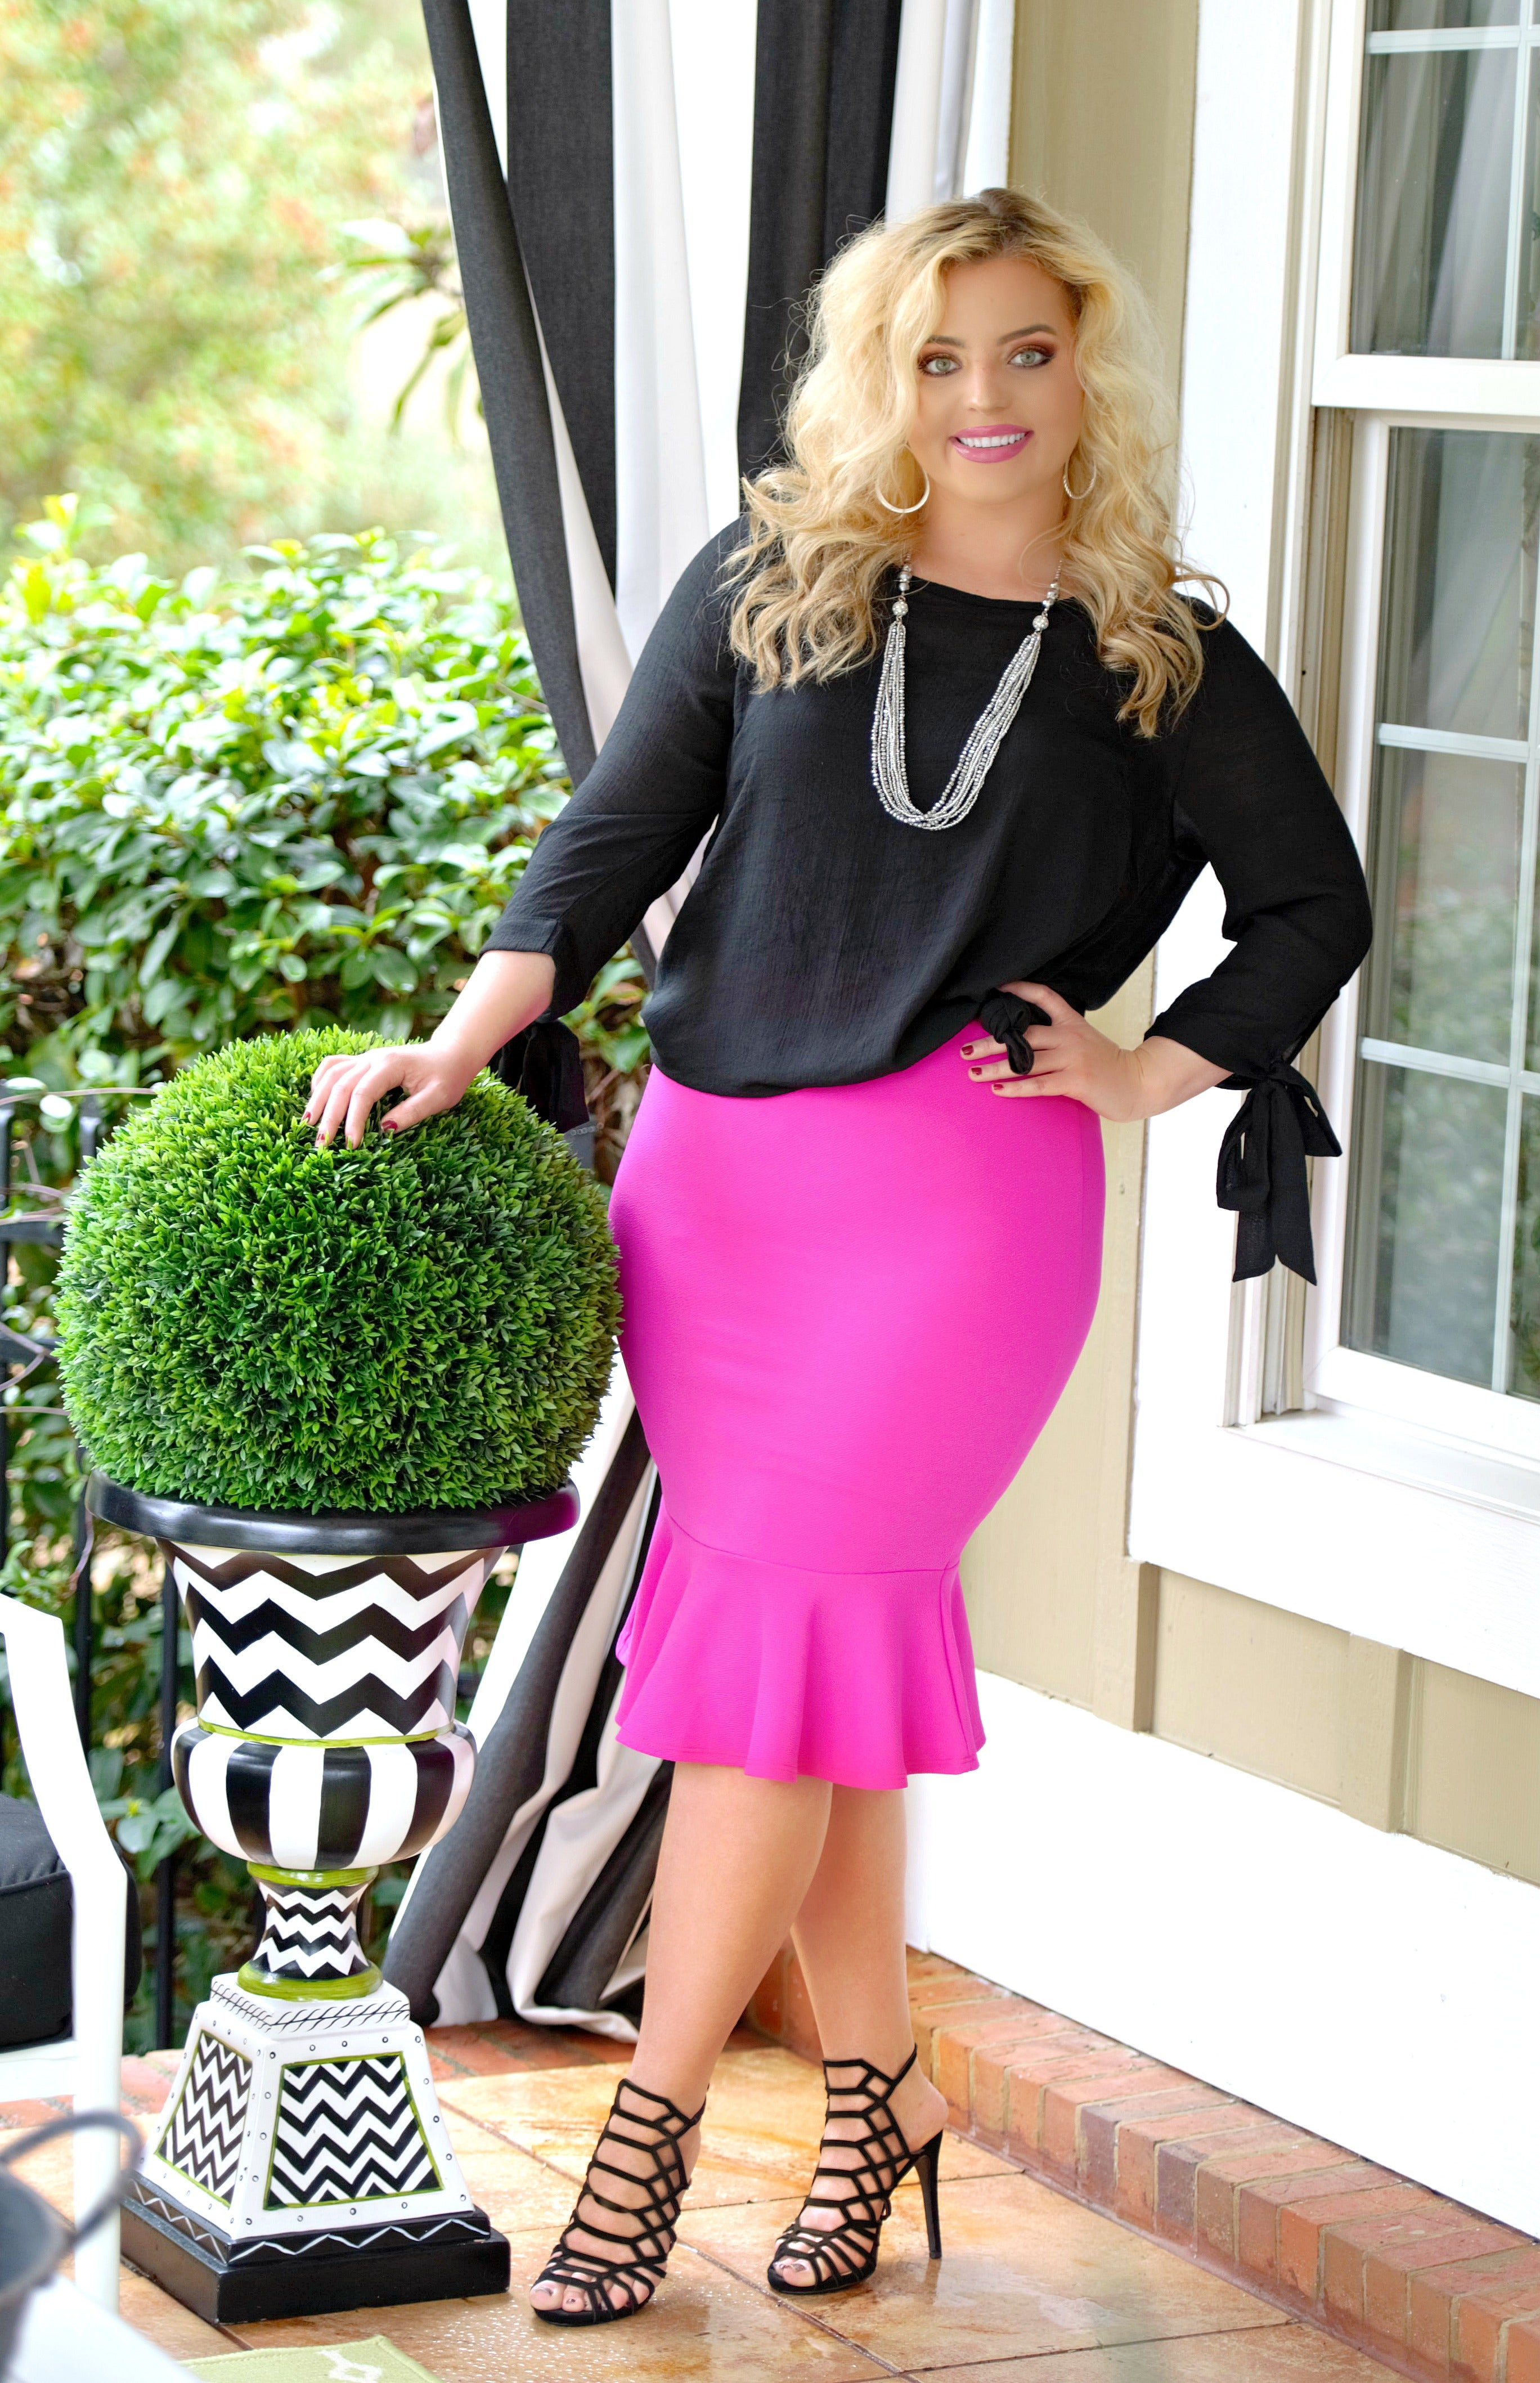 Plus Size Business Casual Ideas - What